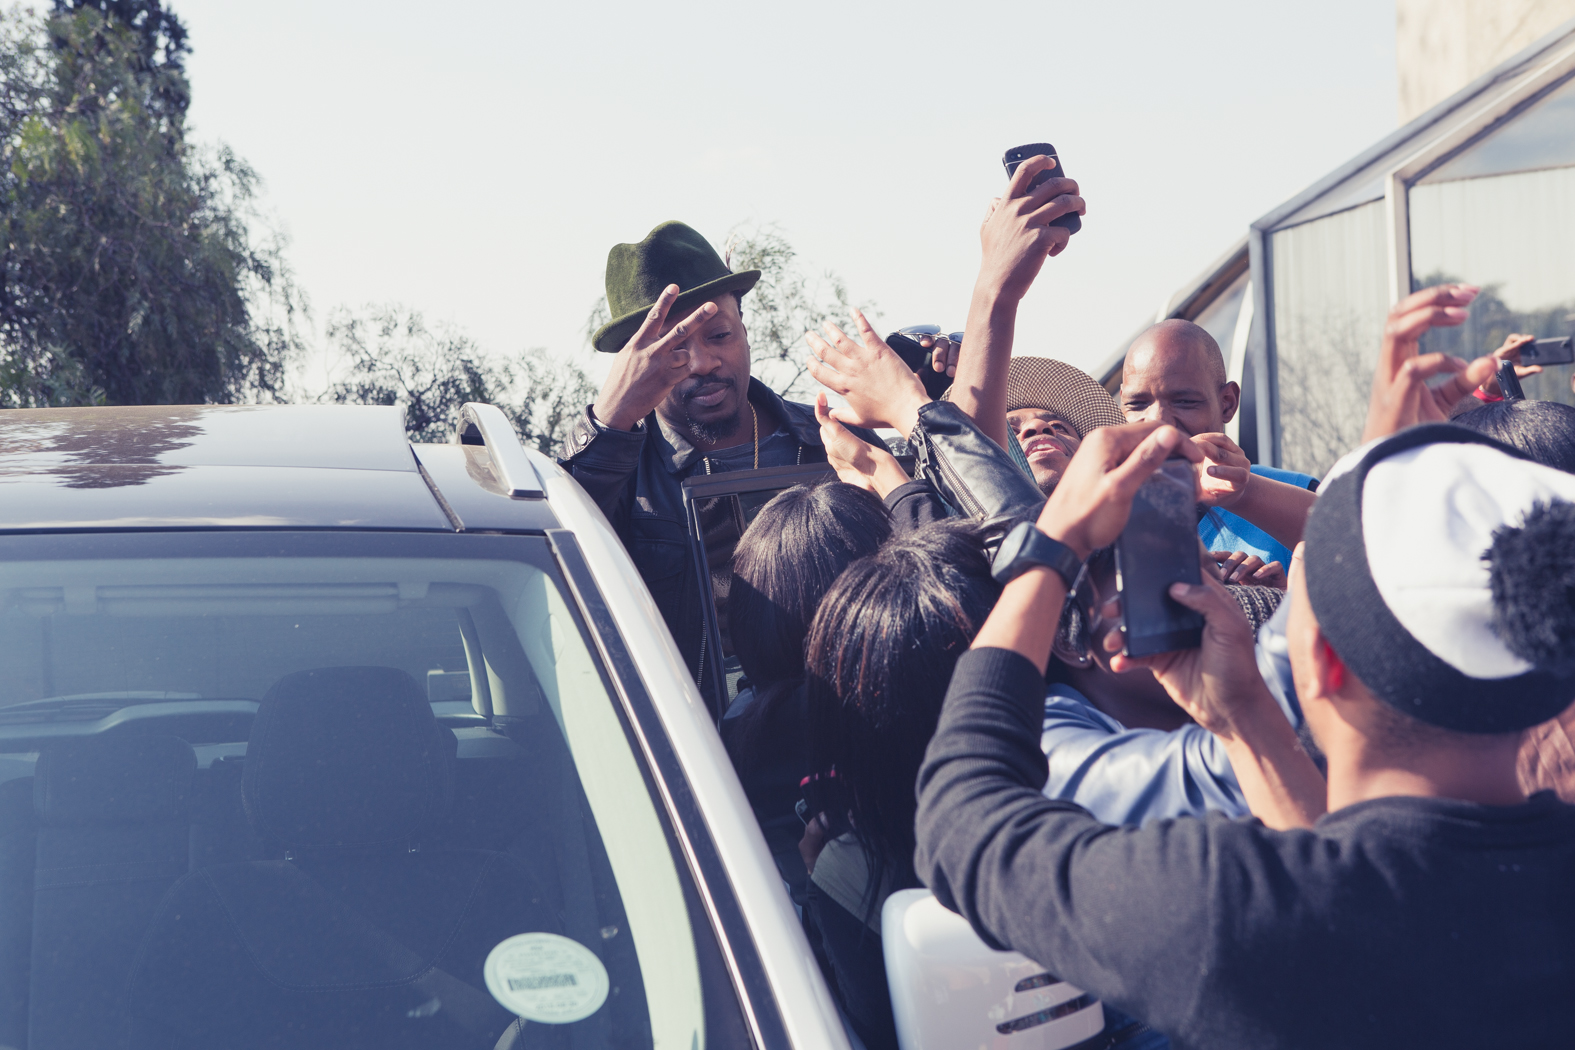 Anthony Hamilton is swarmed by fans after in interview in South Africa